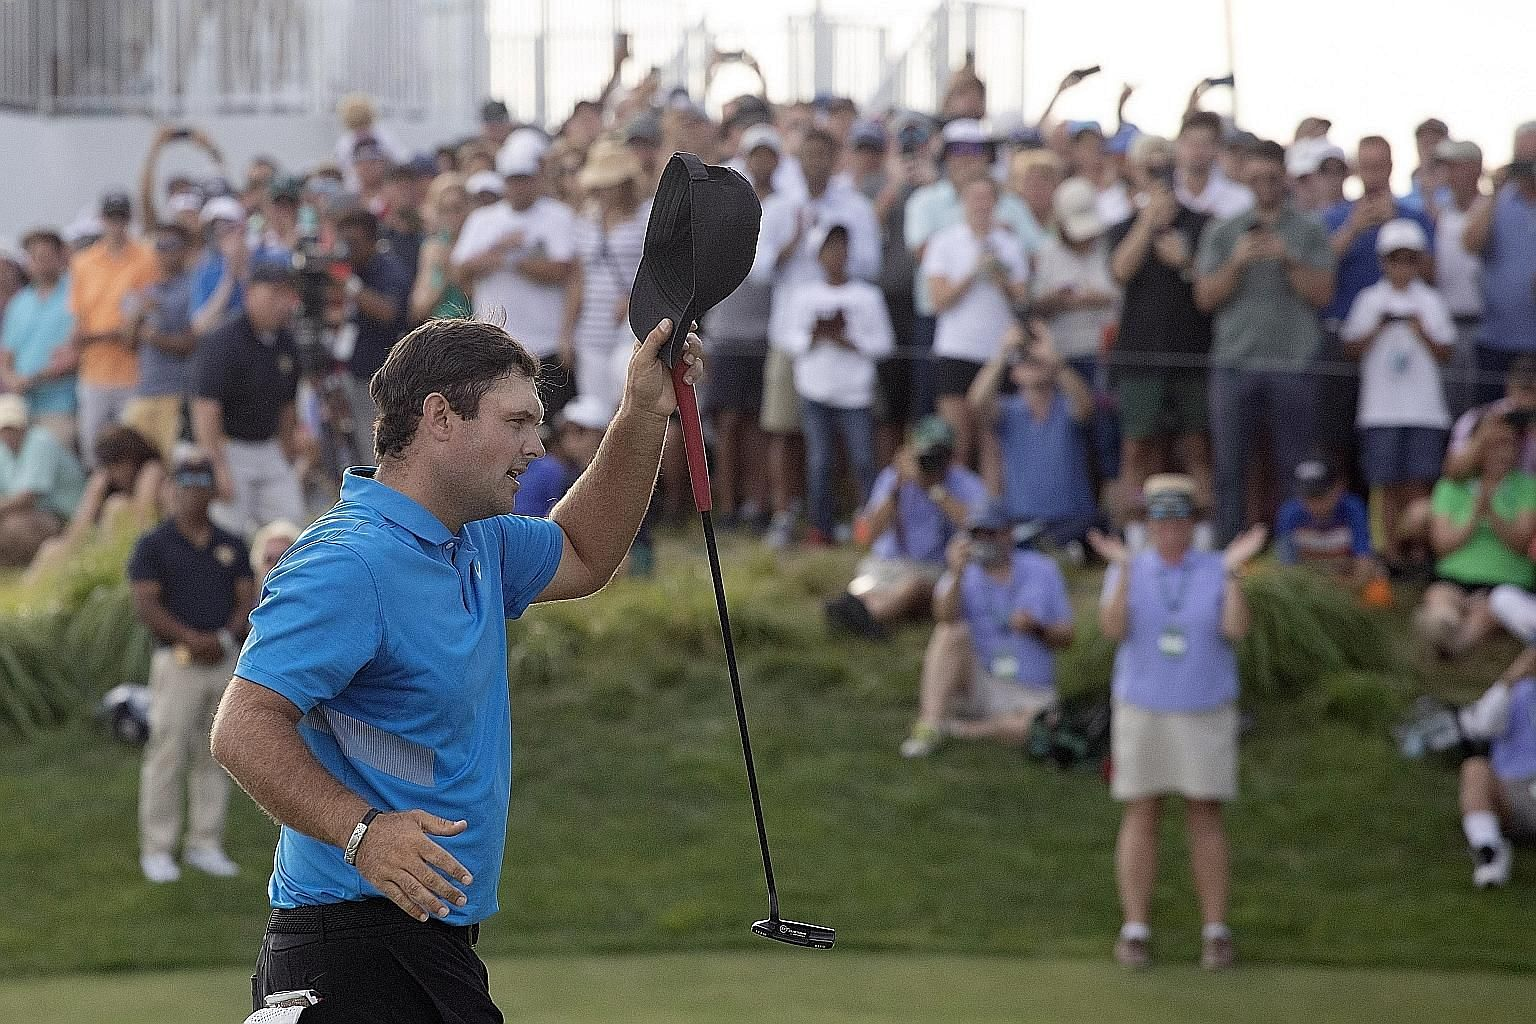 Patrick Reed tipping his cap on the 18th hole at the Liberty National Golf Course, after sealing his one-shot victory. His win in New Jersey was his first title since claiming last year's Masters at Augusta. PHOTO: ASSOCIATED PRESS